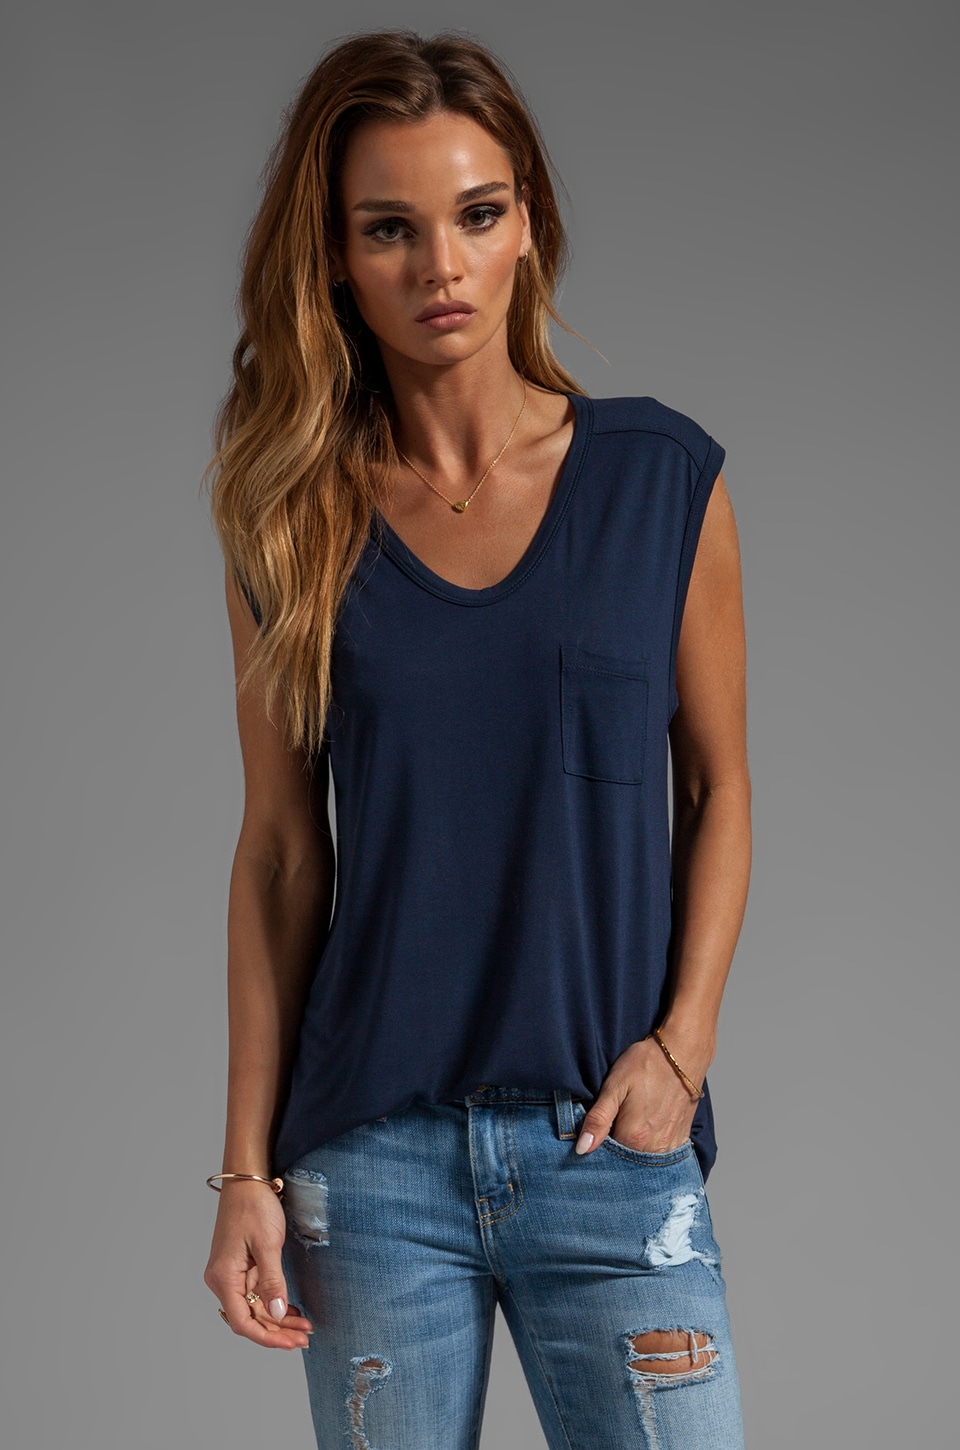 T by Alexander Wang Classic Muscle Tee With Pocket in Indigo